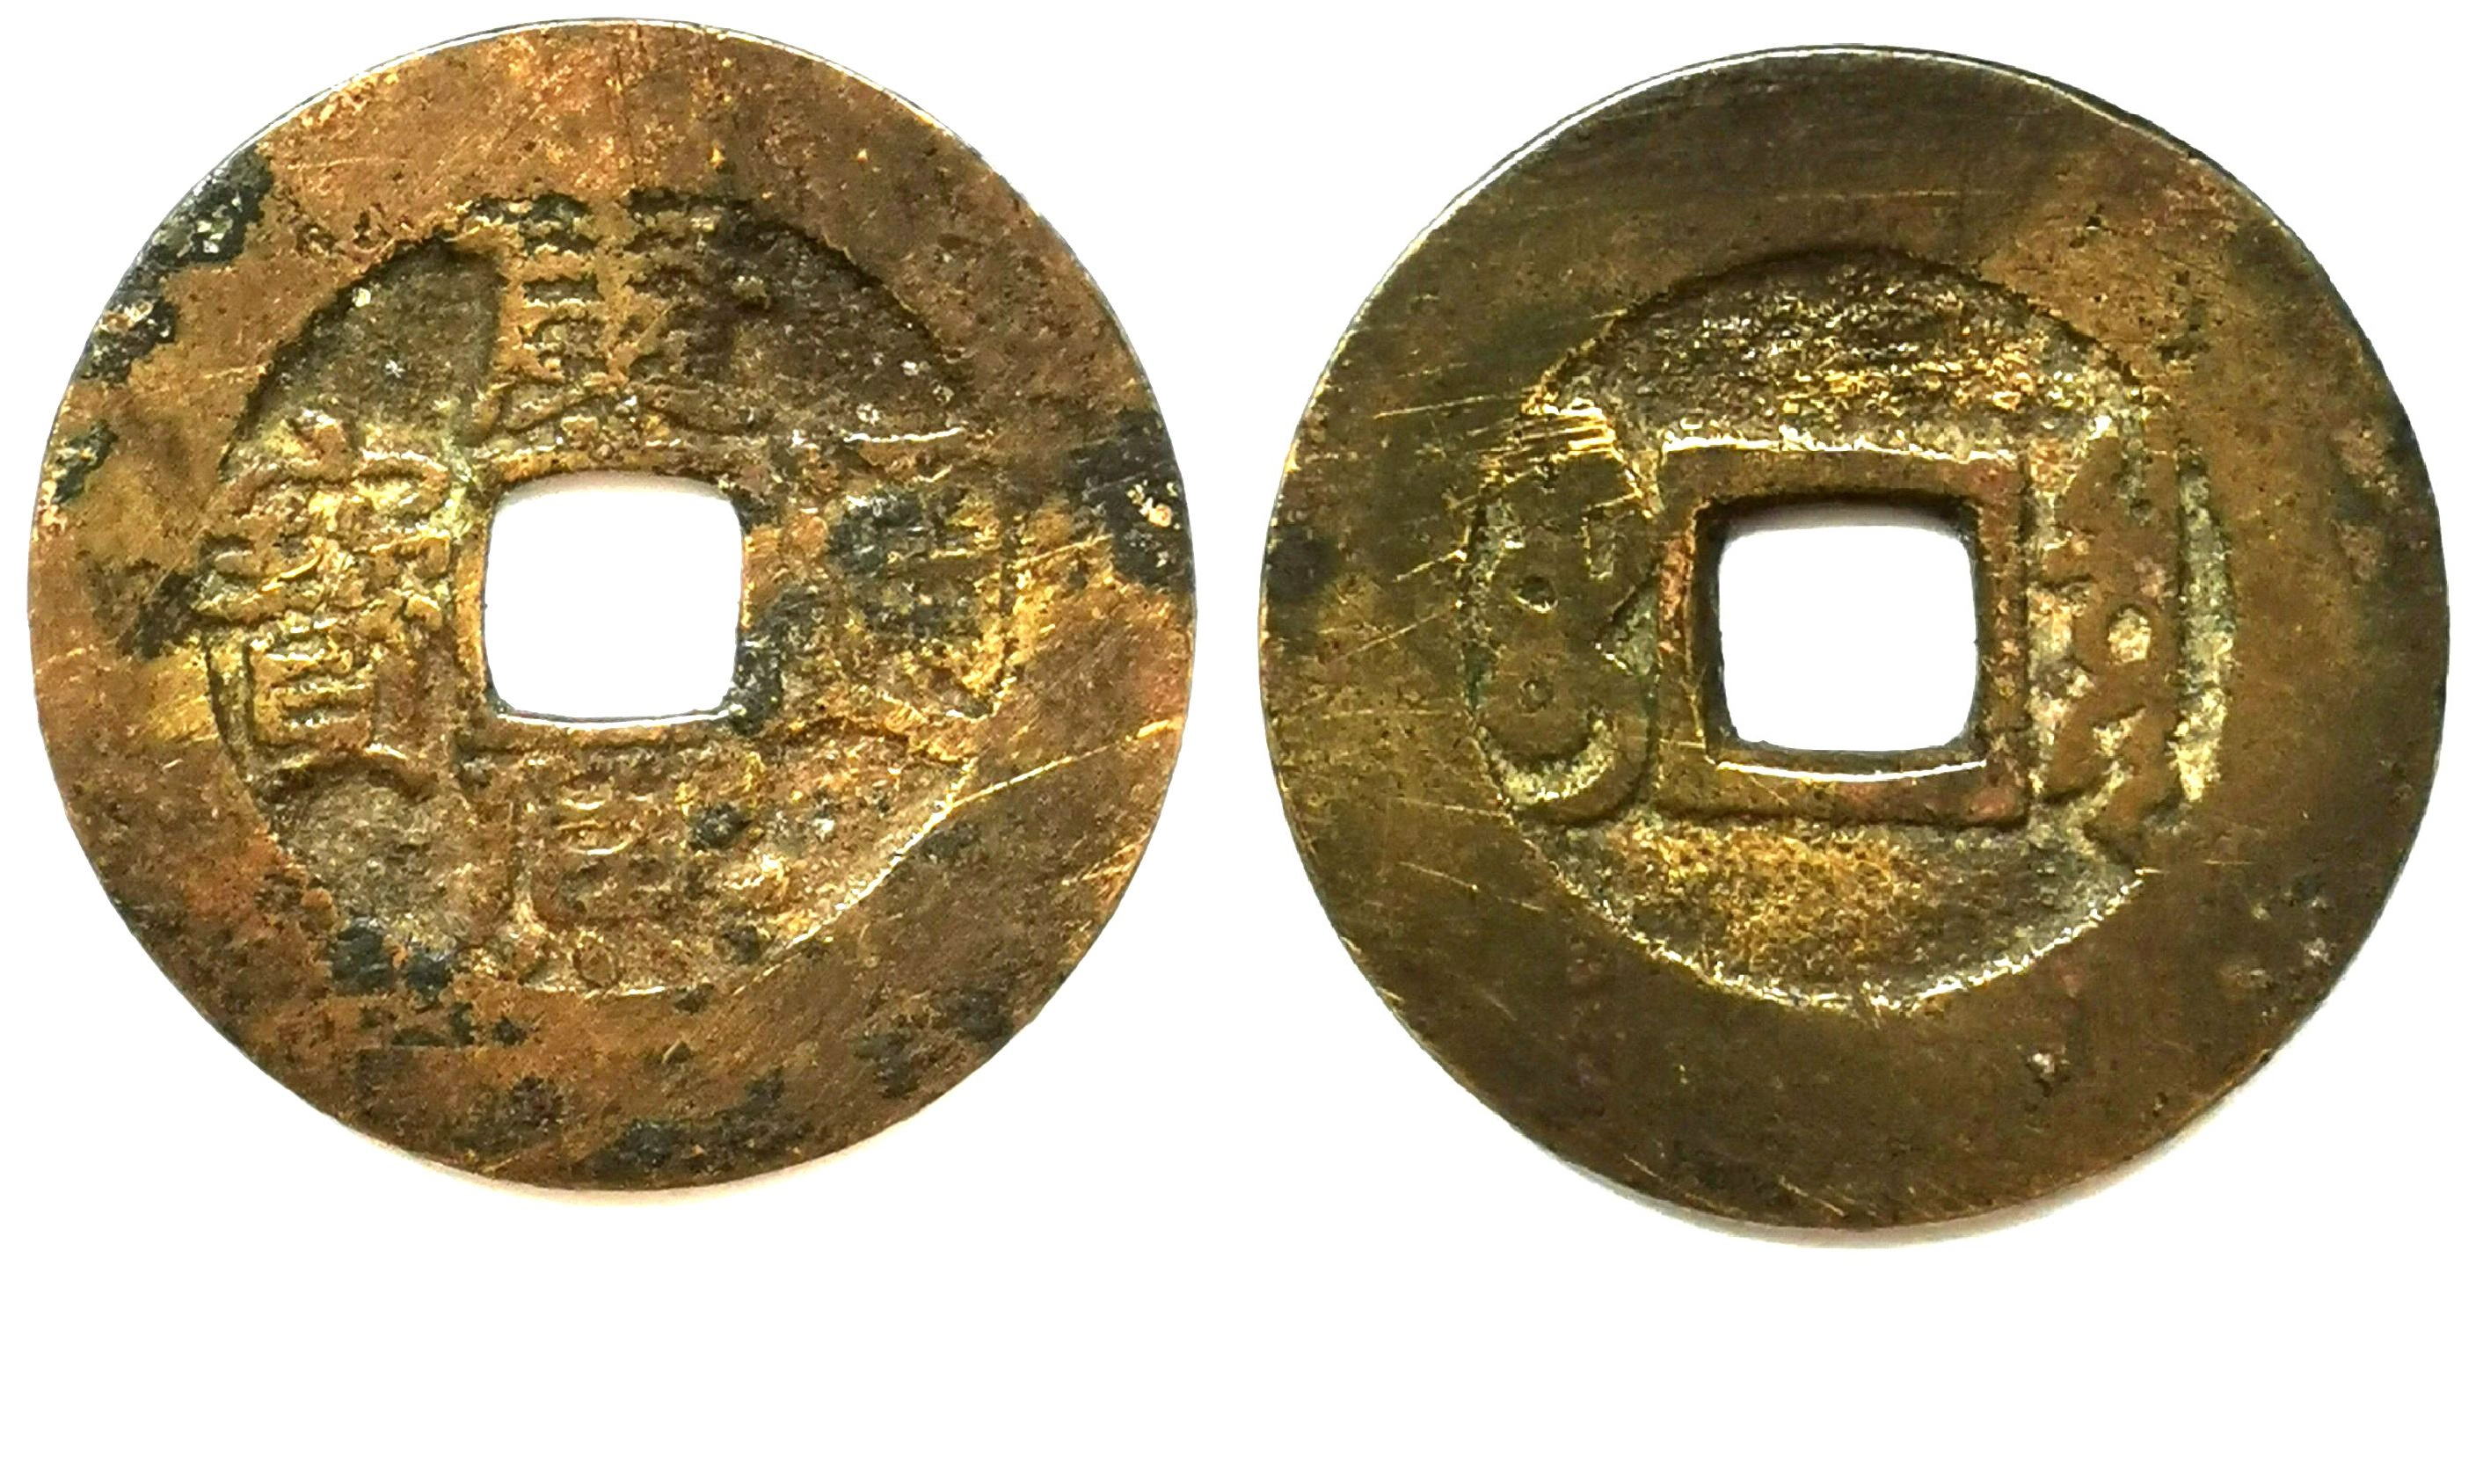 K4415, Kang-Xi Tong-Bao Coin (Broad Rims, Two Dot Tong), China 1710, Rare!